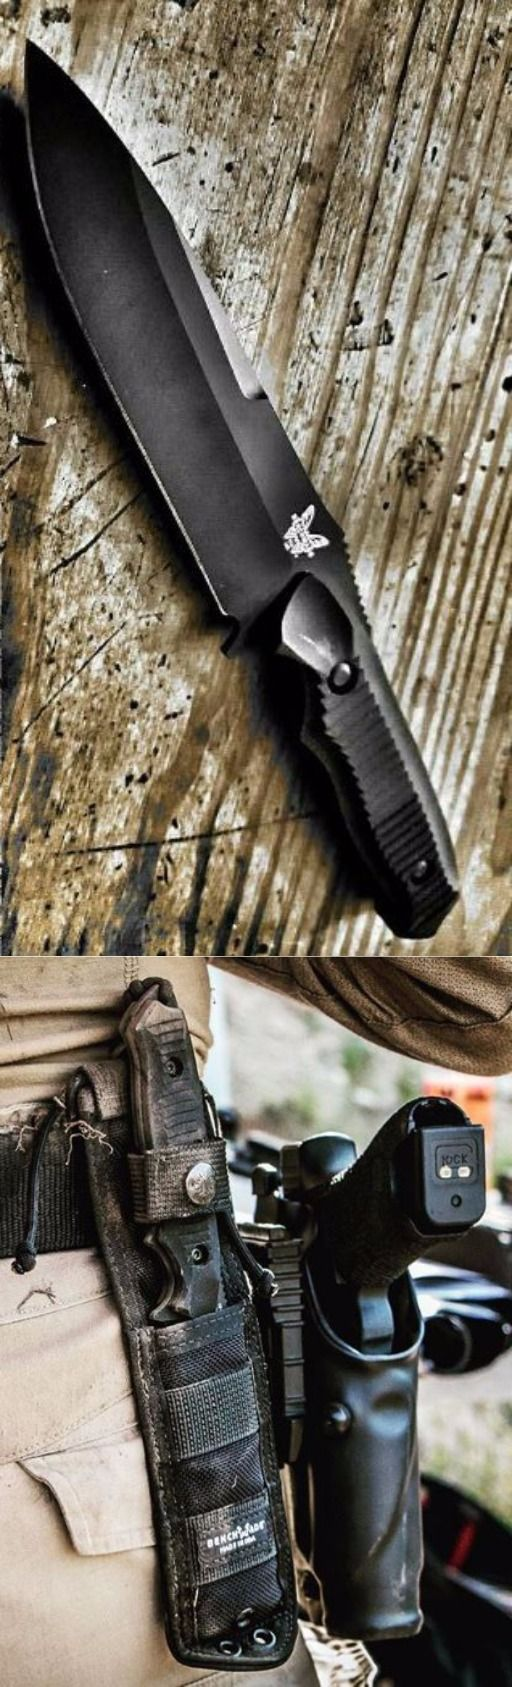 116 Best Images About Weapons On Pinterest Firearms Handgun And 1100 Special Field World39s Largest Supplier Of Firearm Accessories Benchmade Nimravus 140 Serrated Drop Point Tactical Combat Fixed Knife Blade 154cm Premium